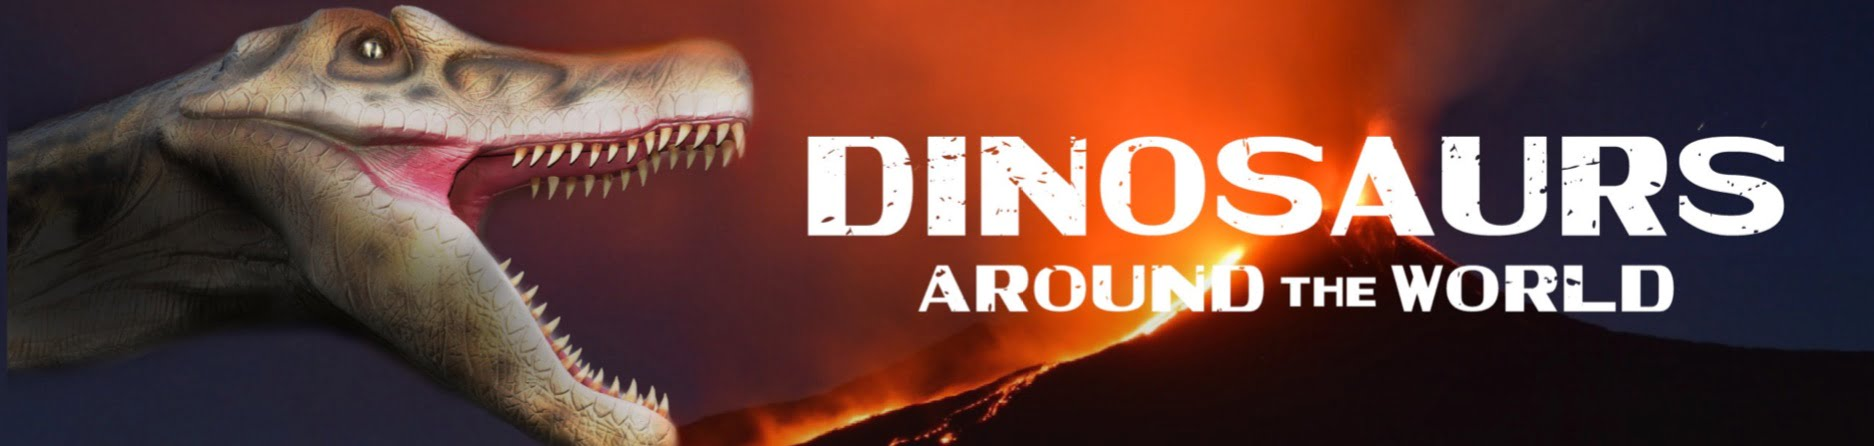 Dinosaurs Around the World Coming to Lake Terrace Convention Center